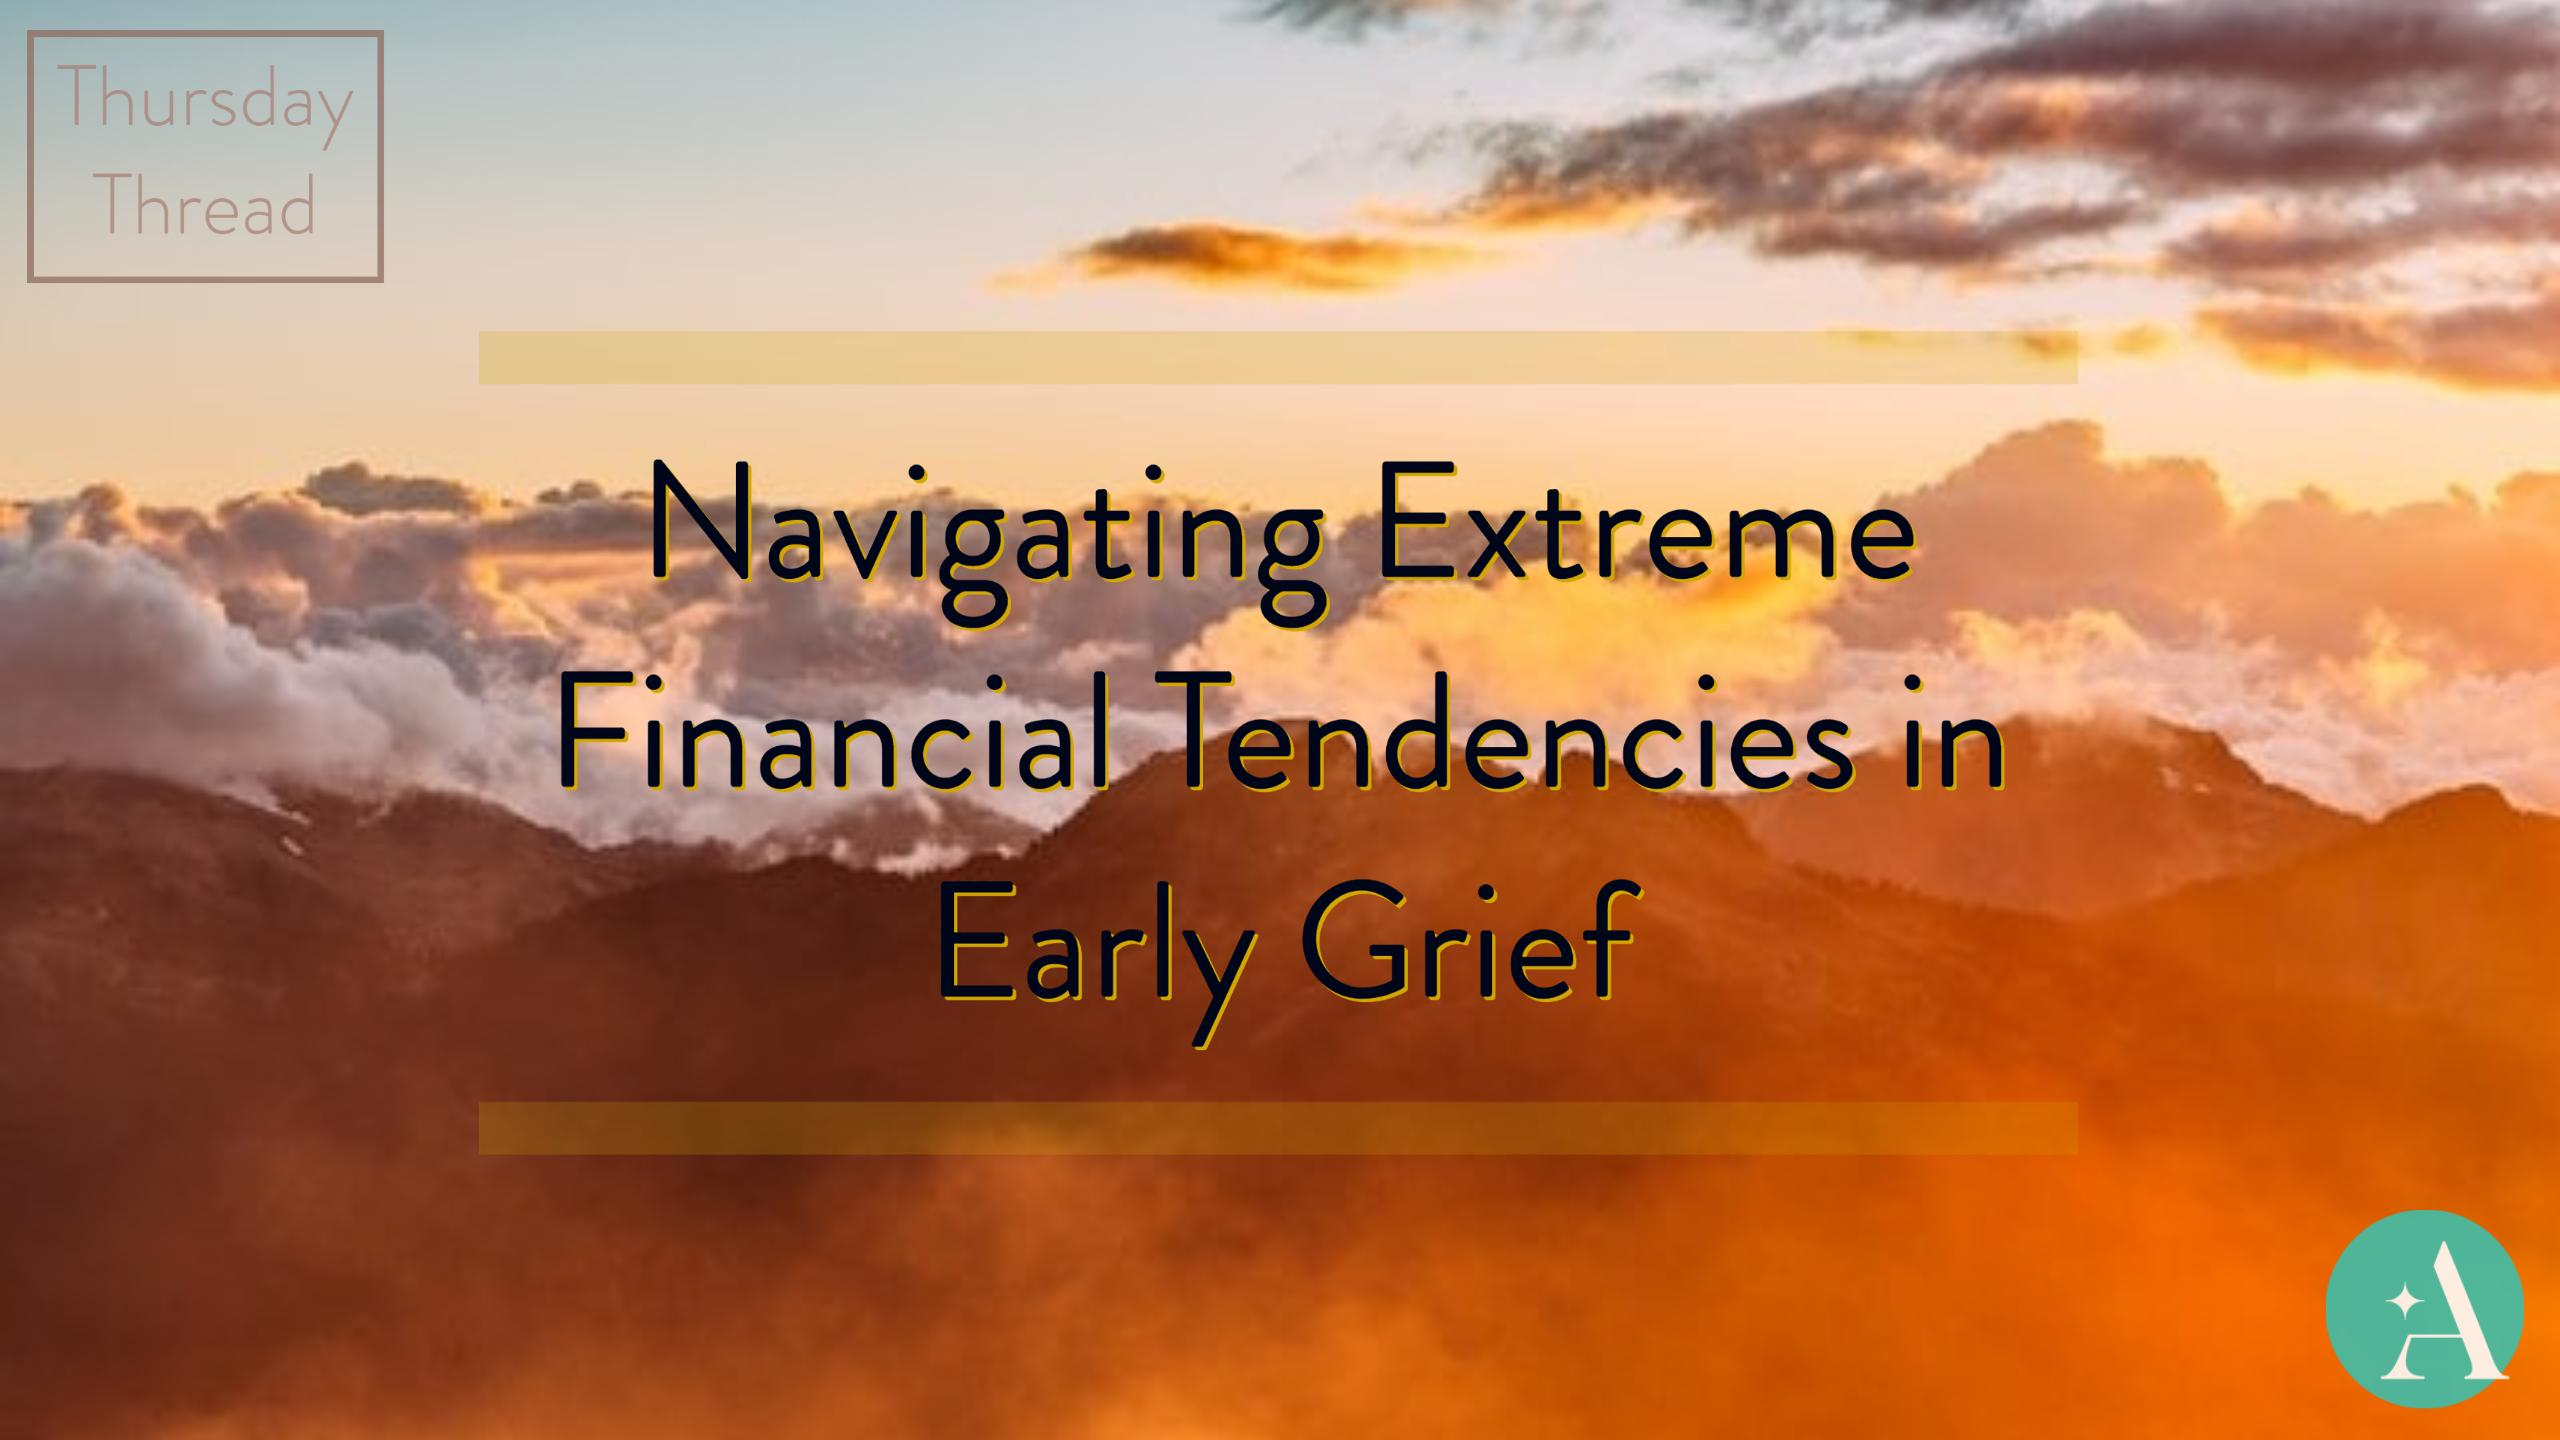 Navigating Extreme Financial Tendencies in Early Grief Thumbnail